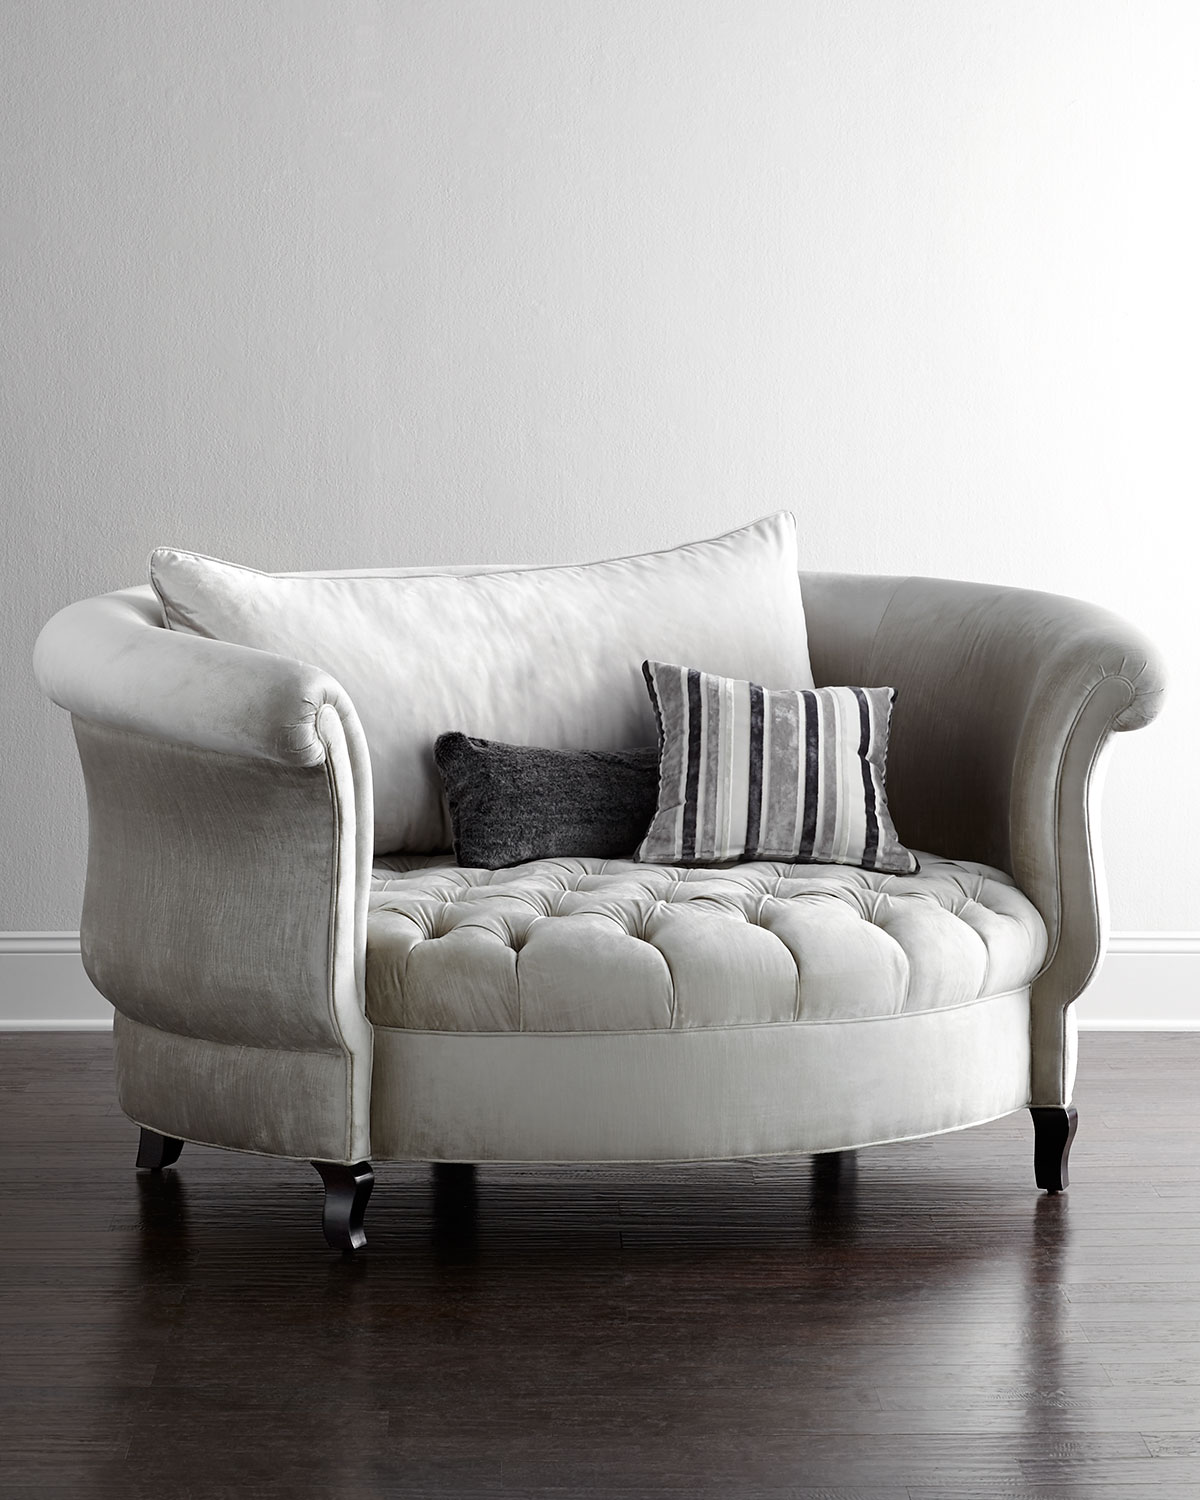 Snuggle Chairs Haute House Harlow Cuddle Chair From Horchow B A C H L E